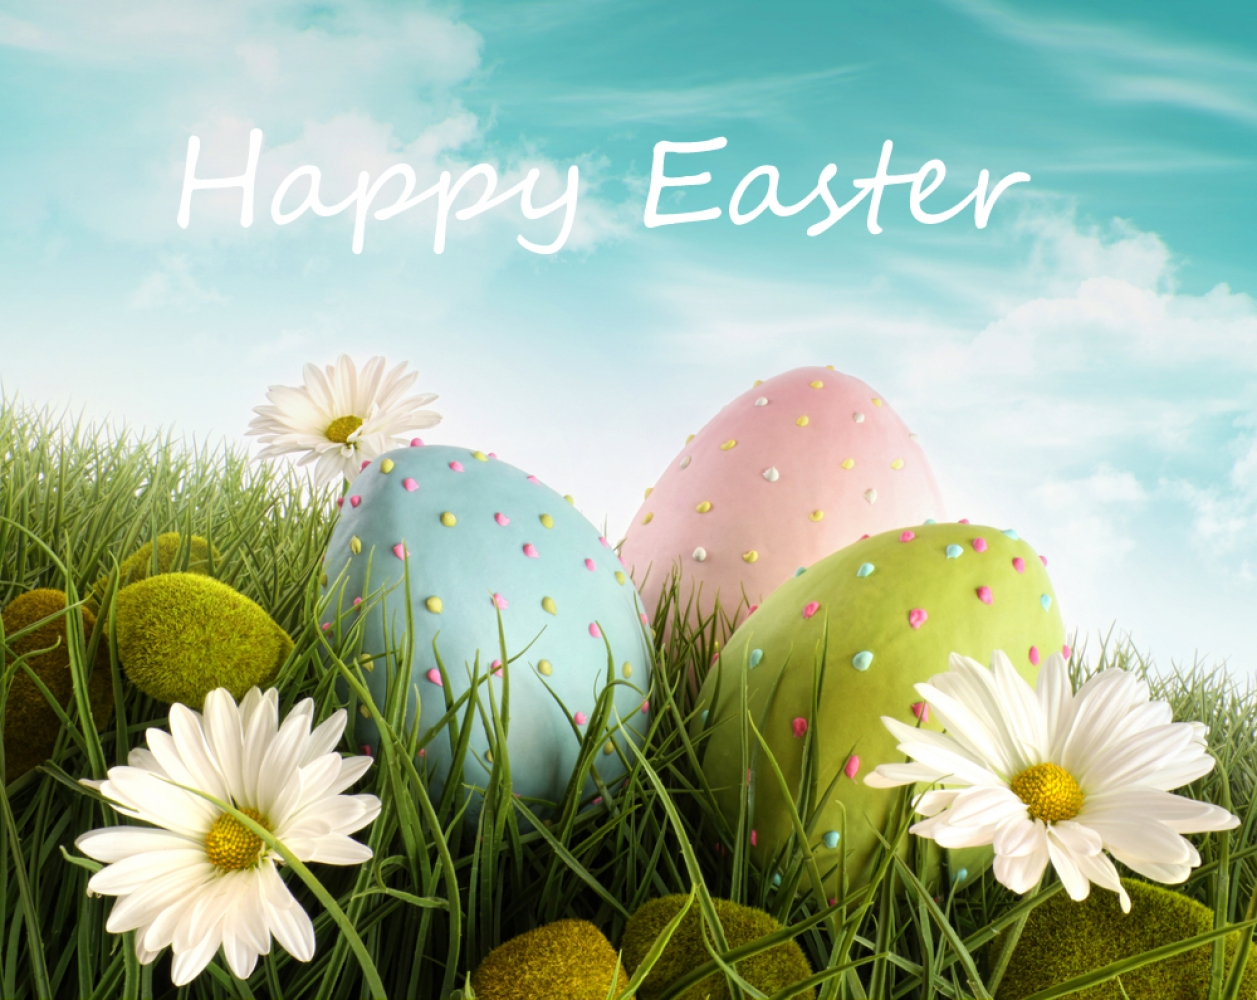 Happy Easter - Office Closed April 2